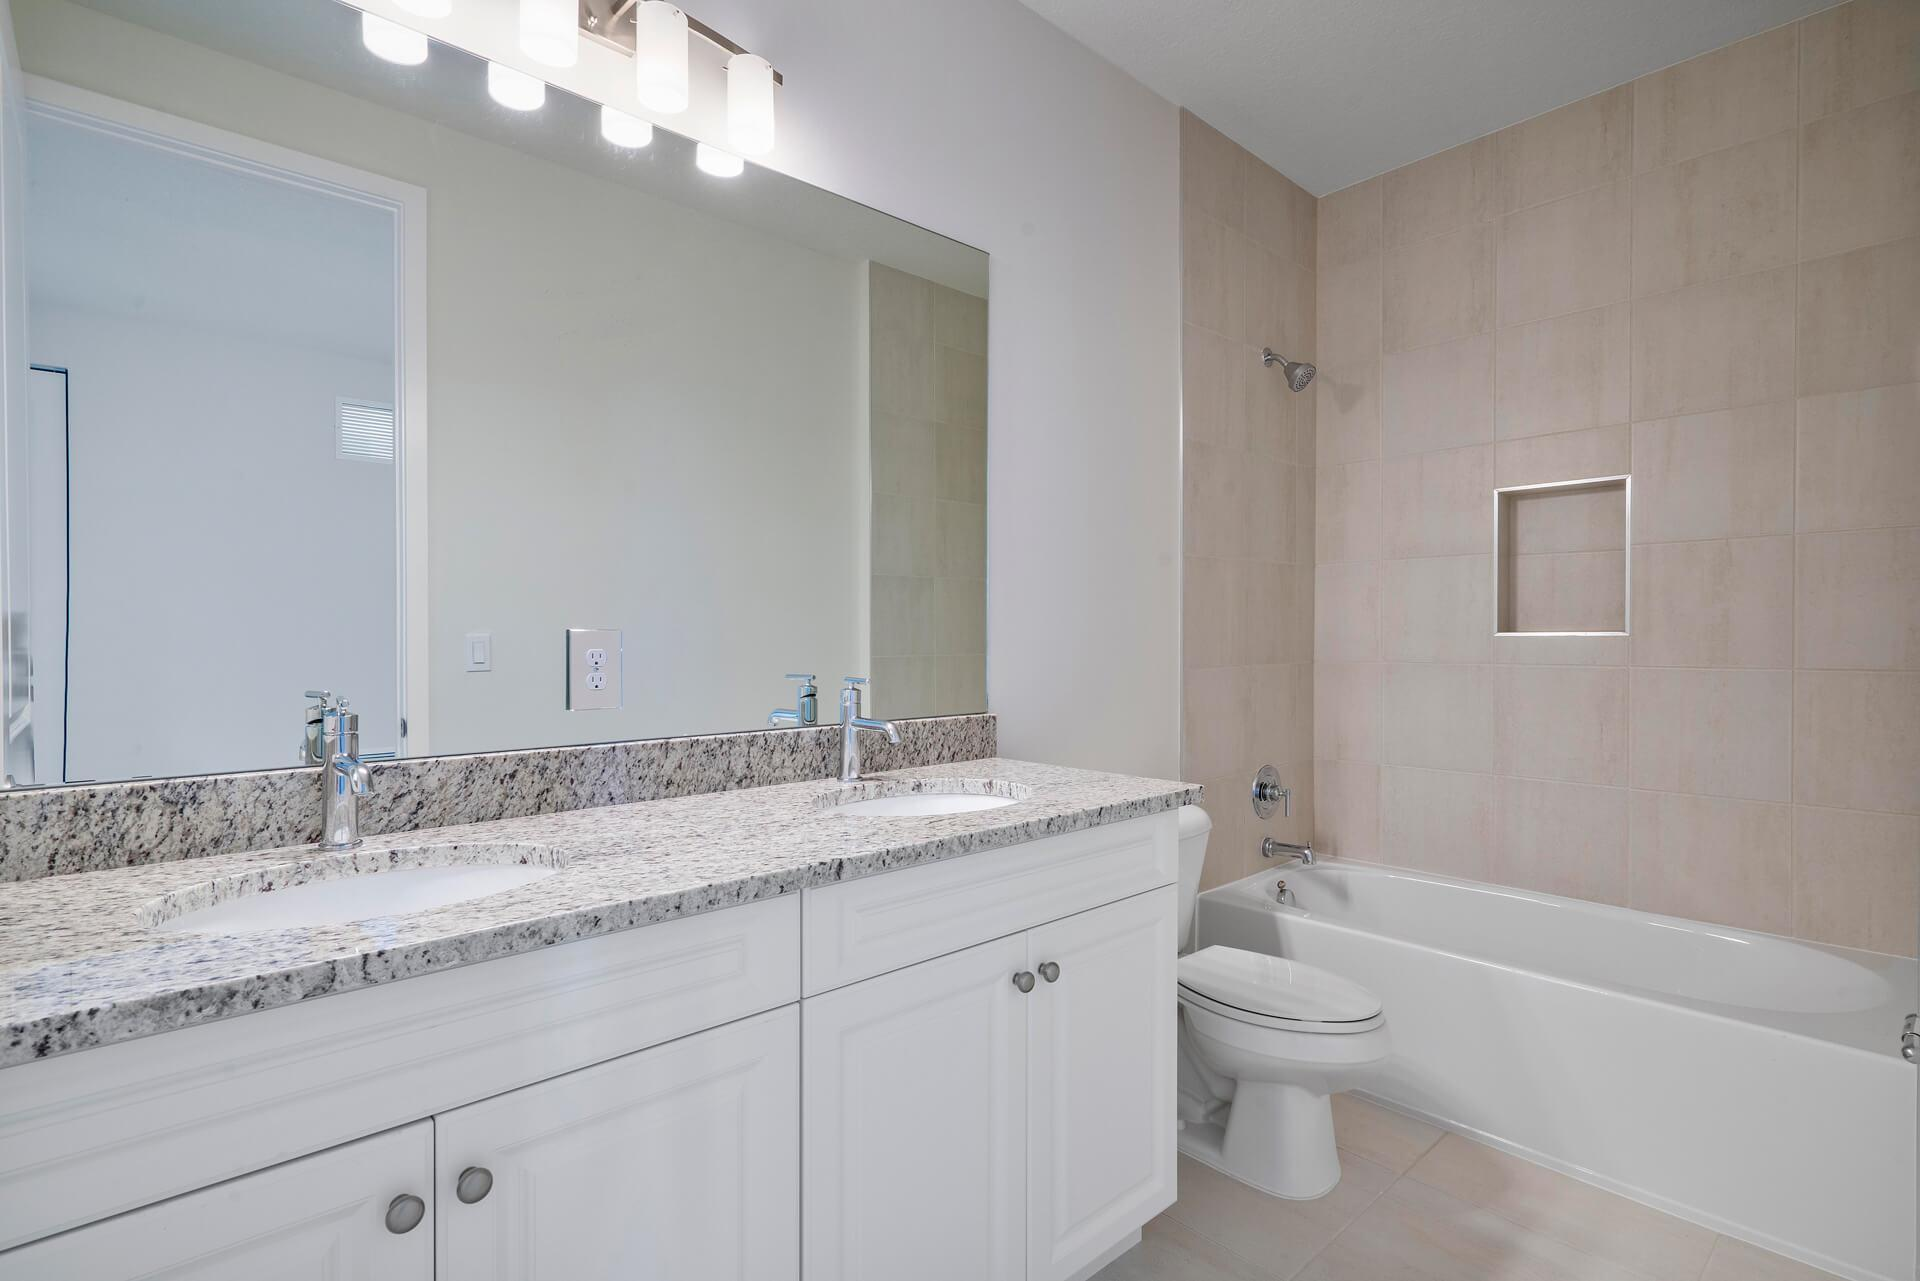 Bathroom featured in the Palma By Akel Homes in Palm Beach County, FL